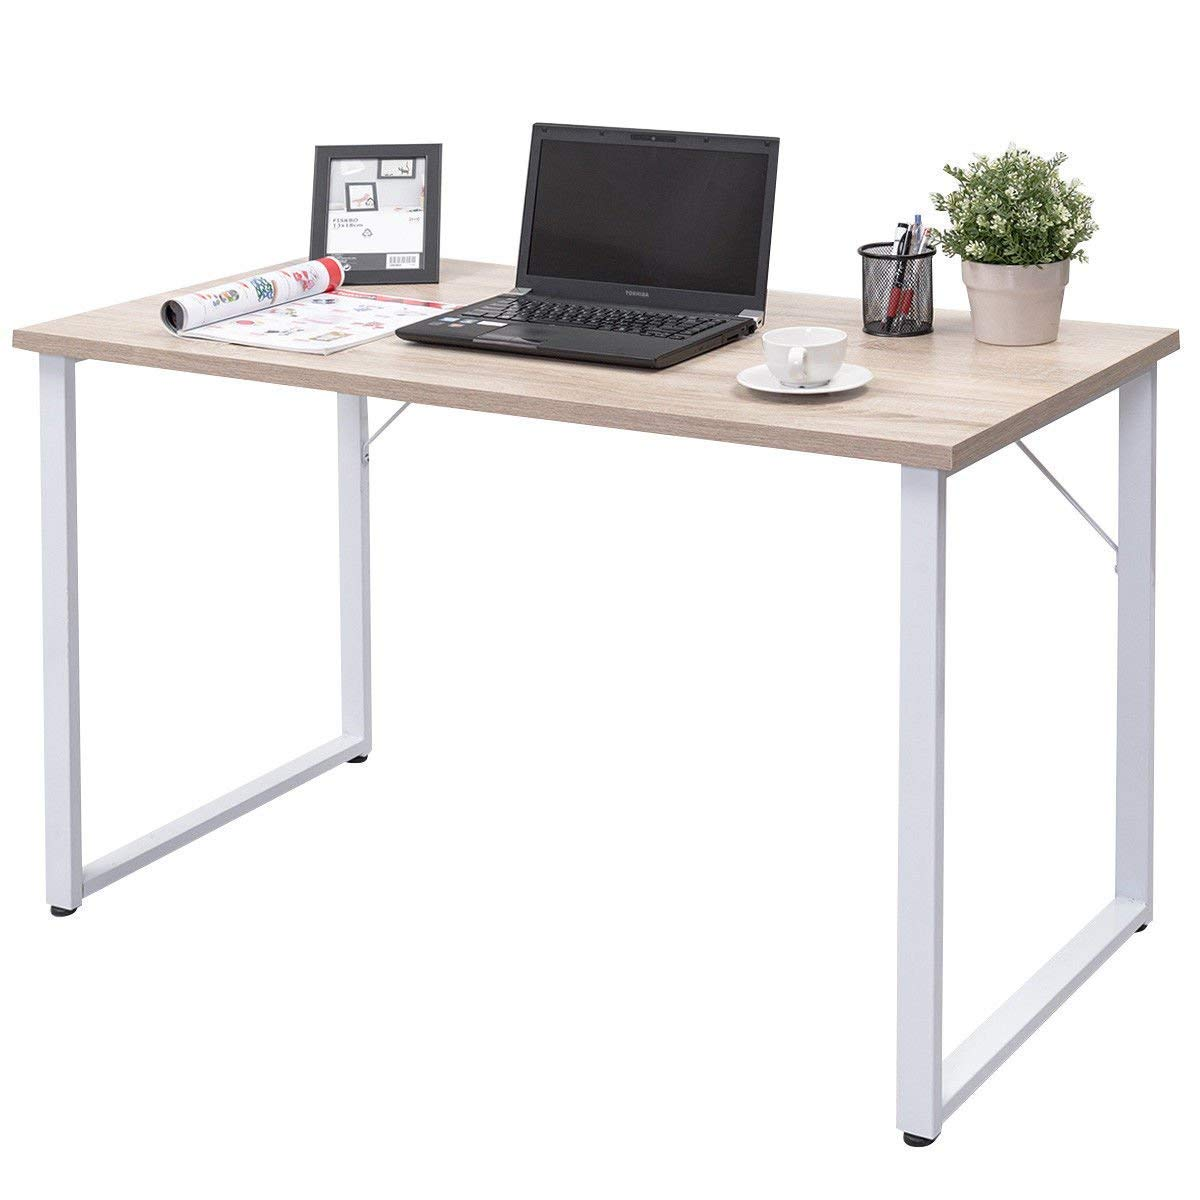 Tangkula writing table computer desk writing desk simple modern wood laptop table sturdy durable study table multi function workstation